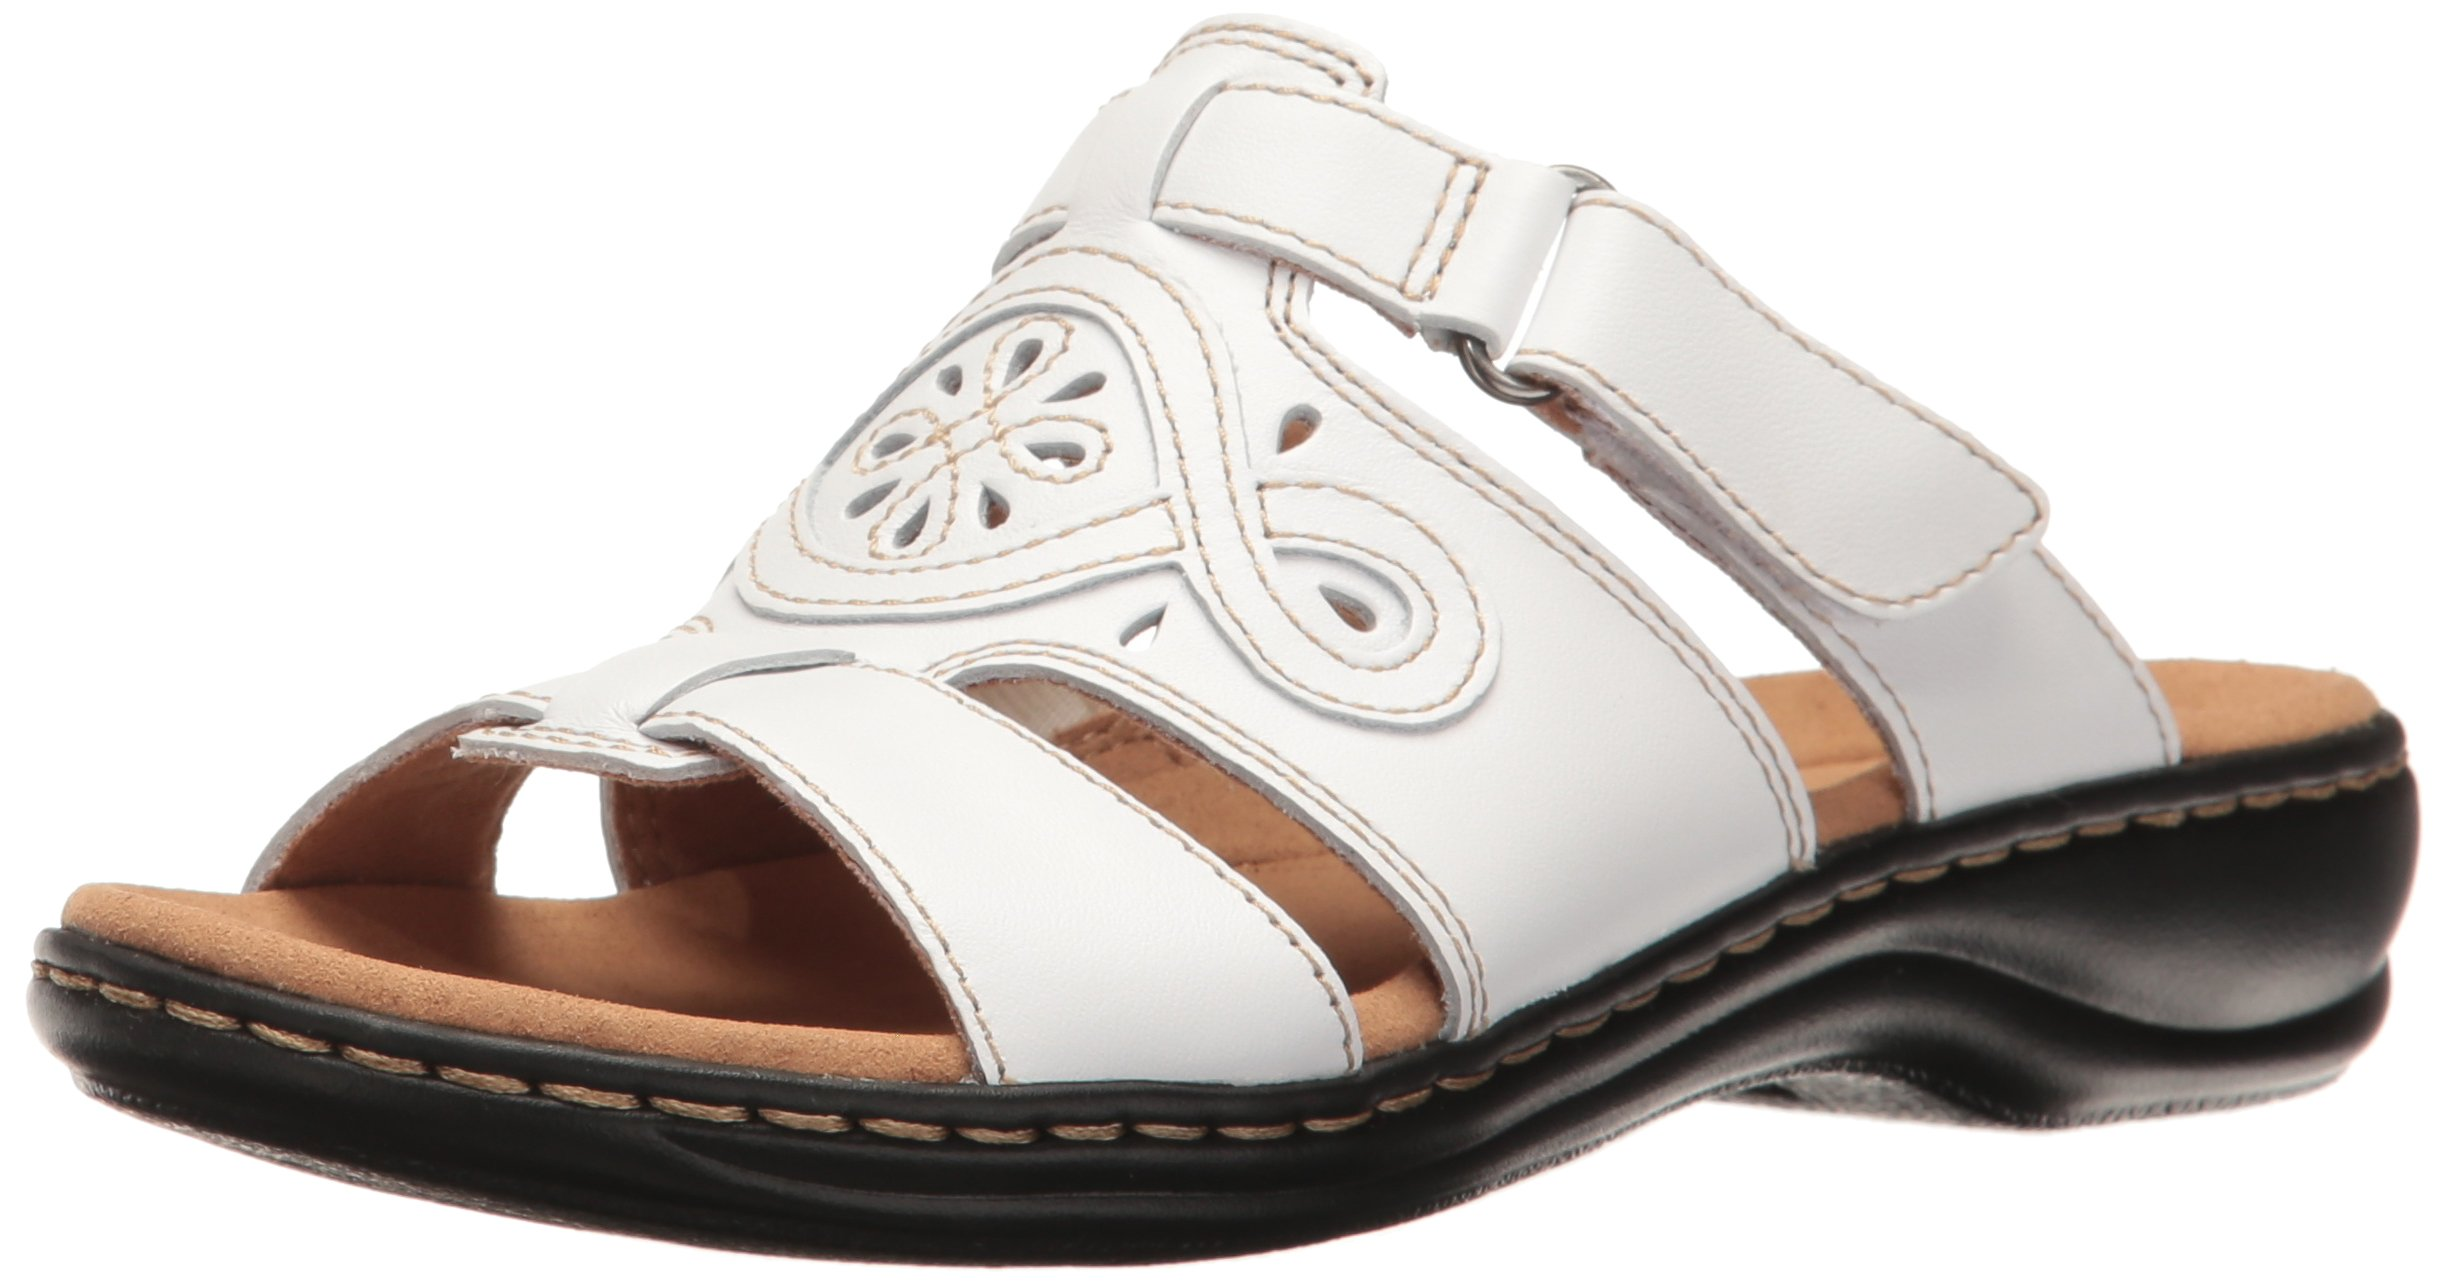 Clarks Women's Leisa Higley Slide Sandal, White Leather, 8.5 M US product  image